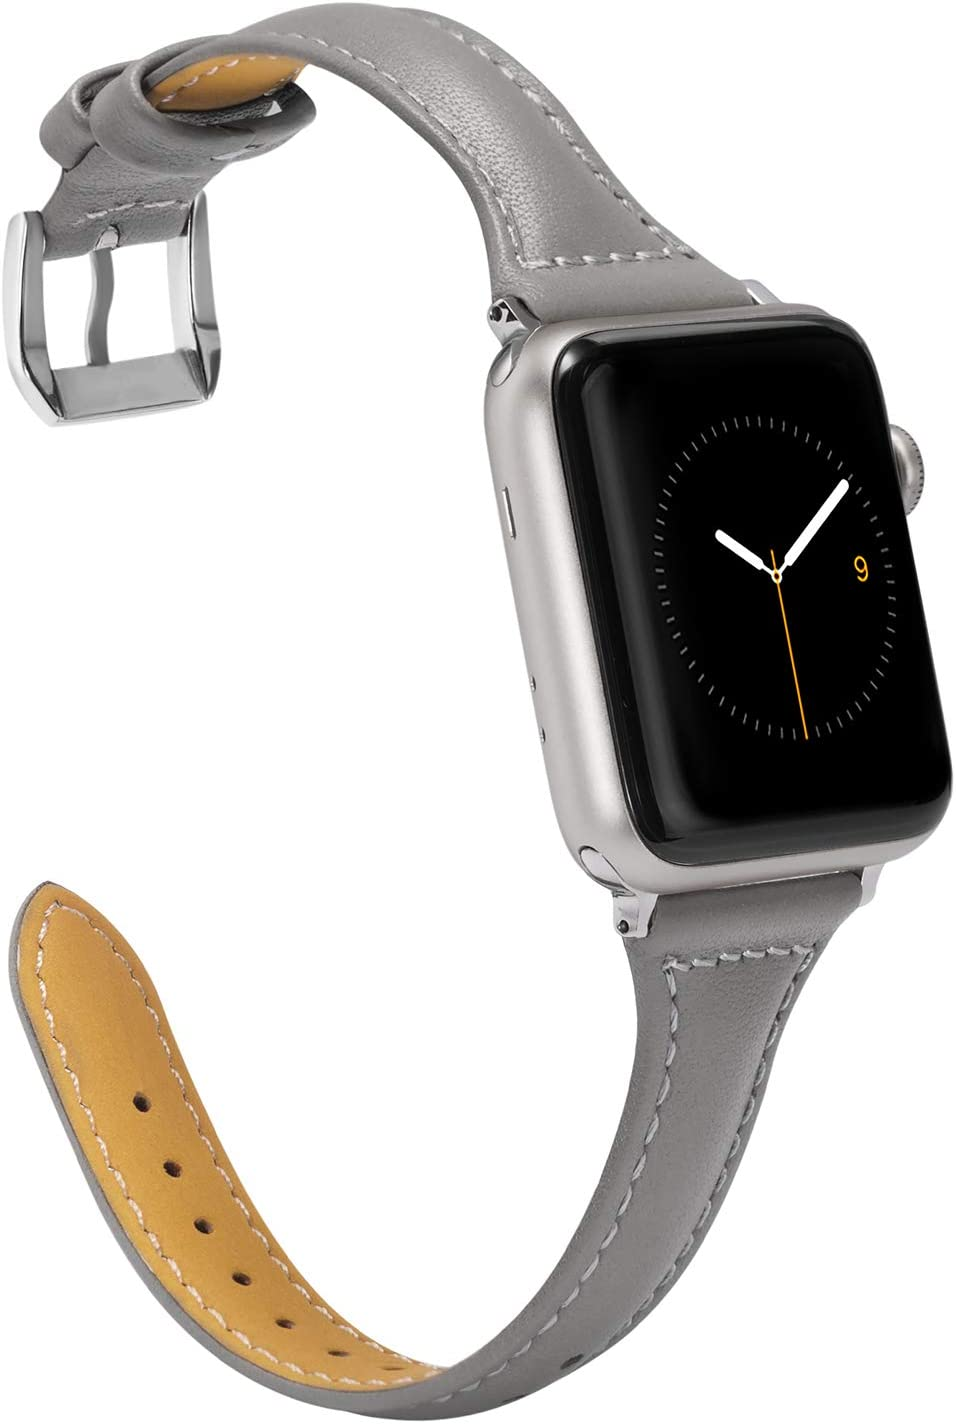 Wearlizer Thin Leather Compatible with Apple Watch 42mm 44mm for iWatch SE Womens Mens Top Grain Leather Sport Strap, Stylish Simple Slim Cute Wristband (Sliver Buckle) Series 6 5 4 3 2 1-Grey